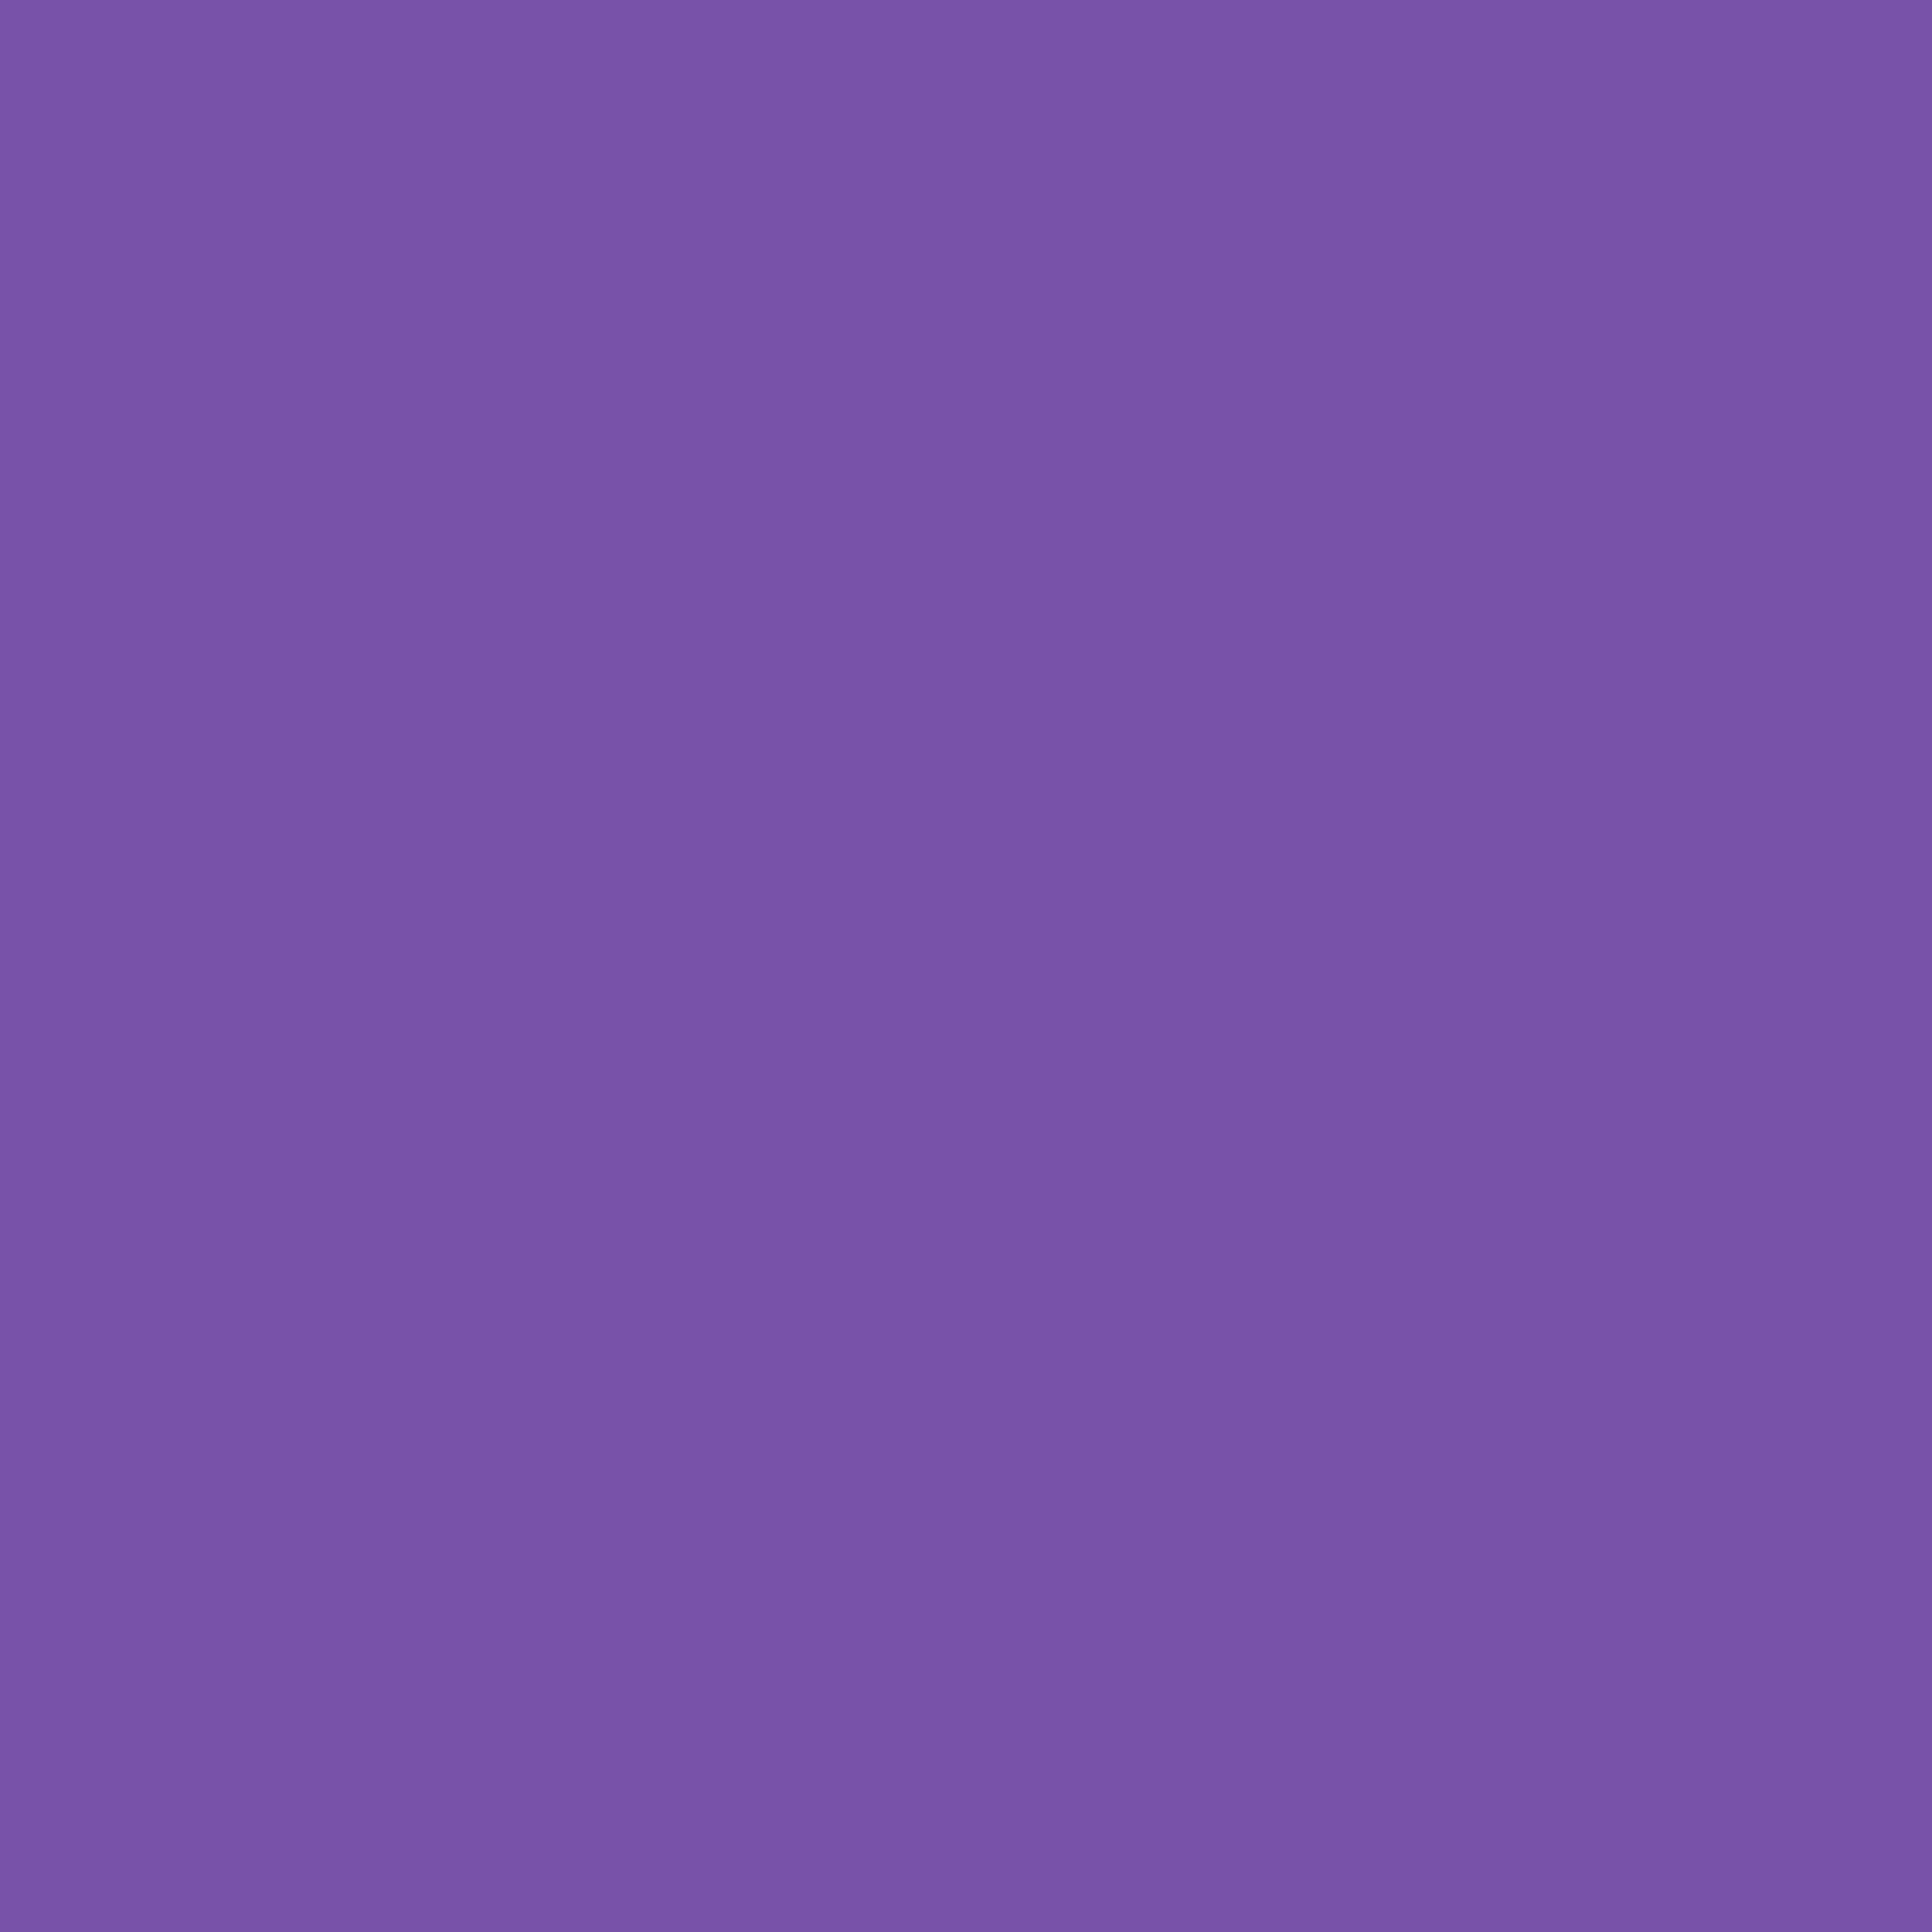 2048x2048 Royal Purple Solid Color Background